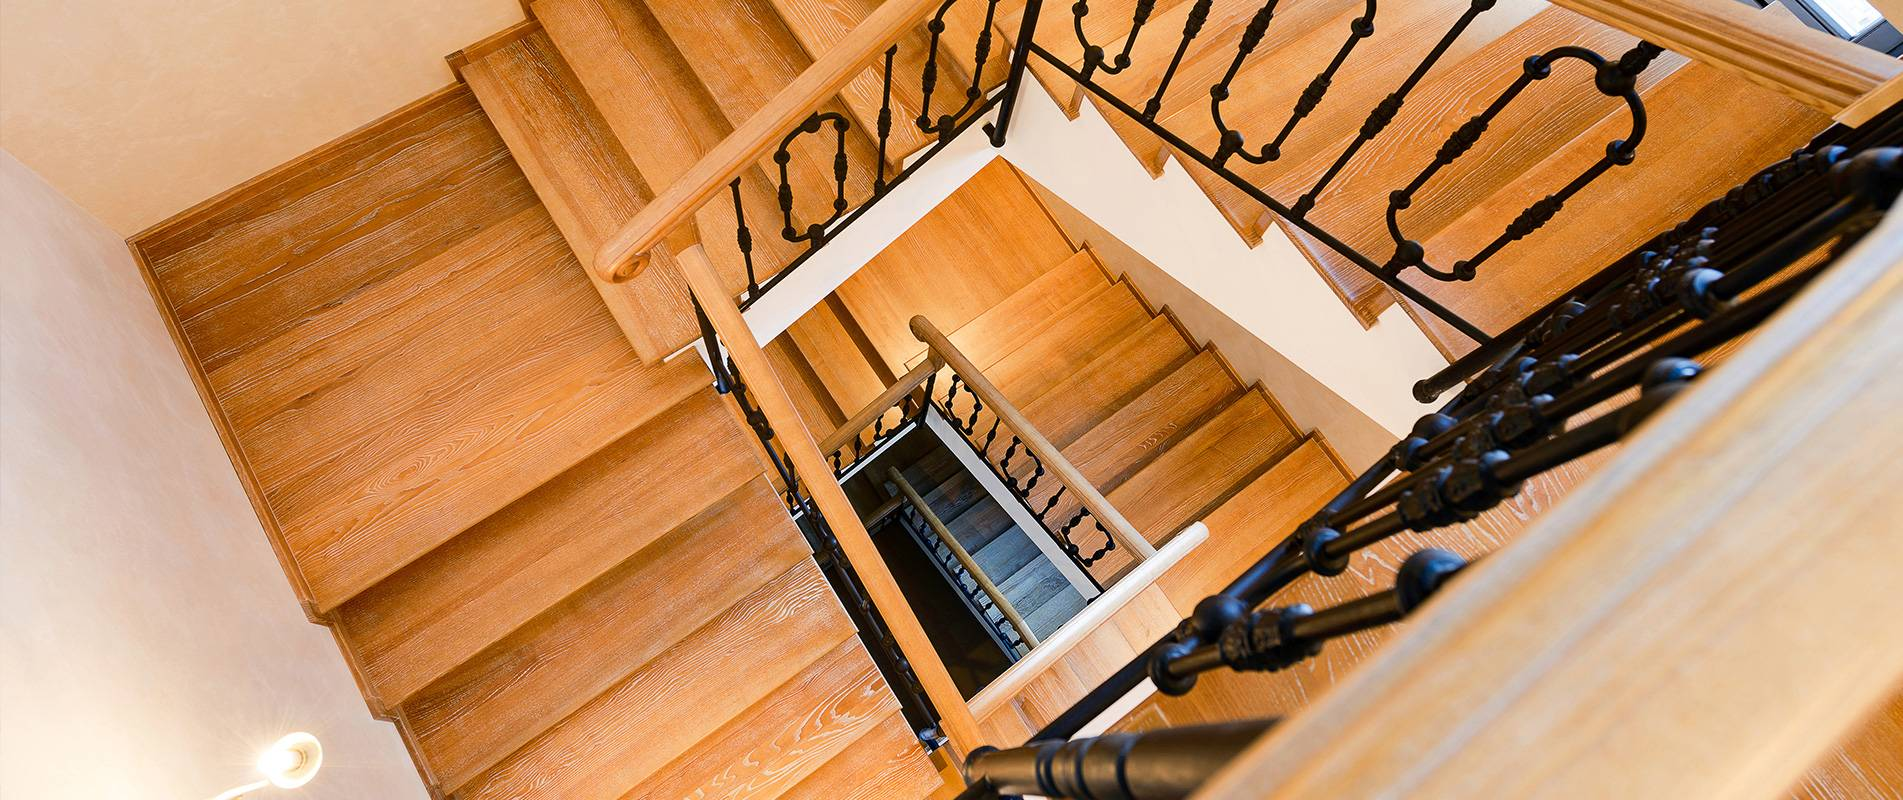 wooden spiral staircase with black ballestrading